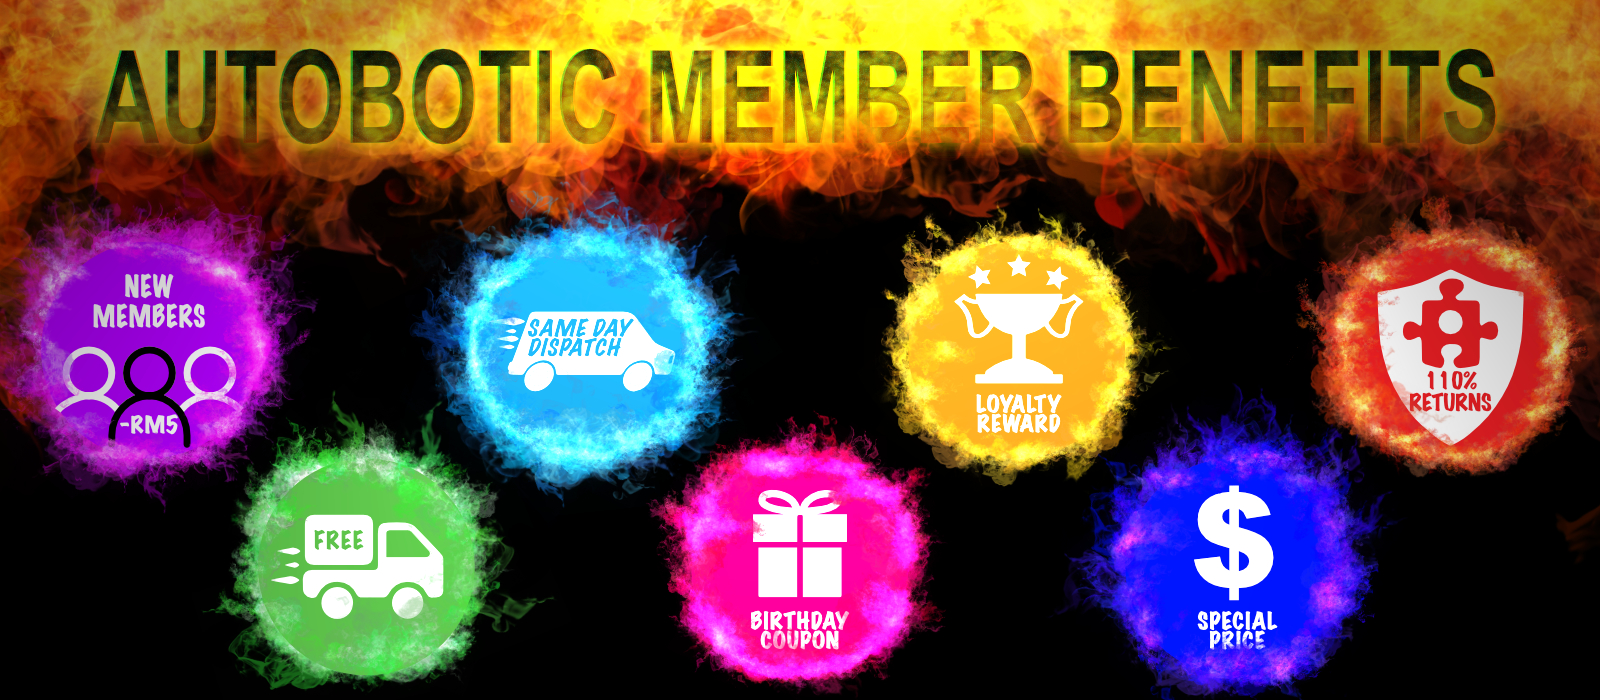 Autobotic Member Benefits